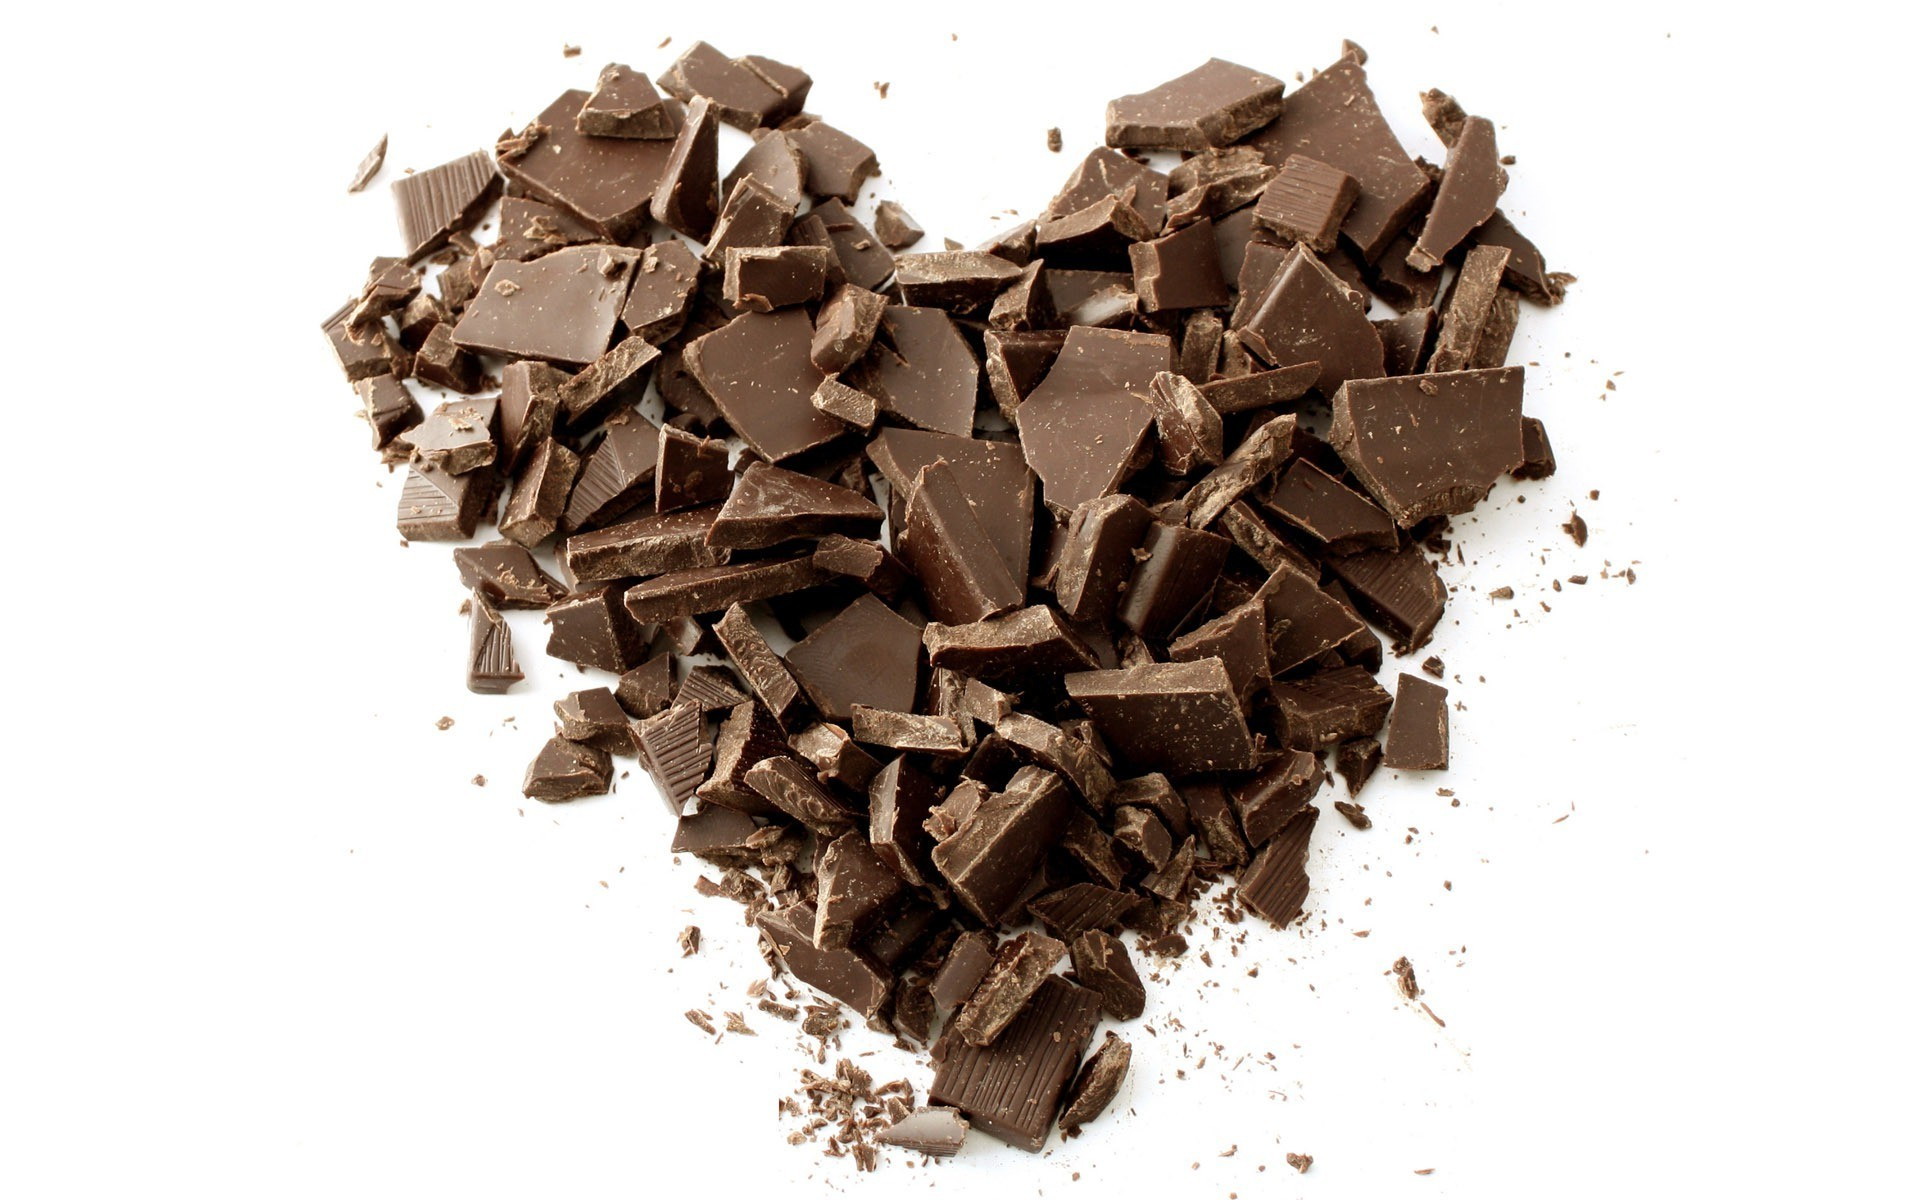 Chocolate pieces shaped as a heart